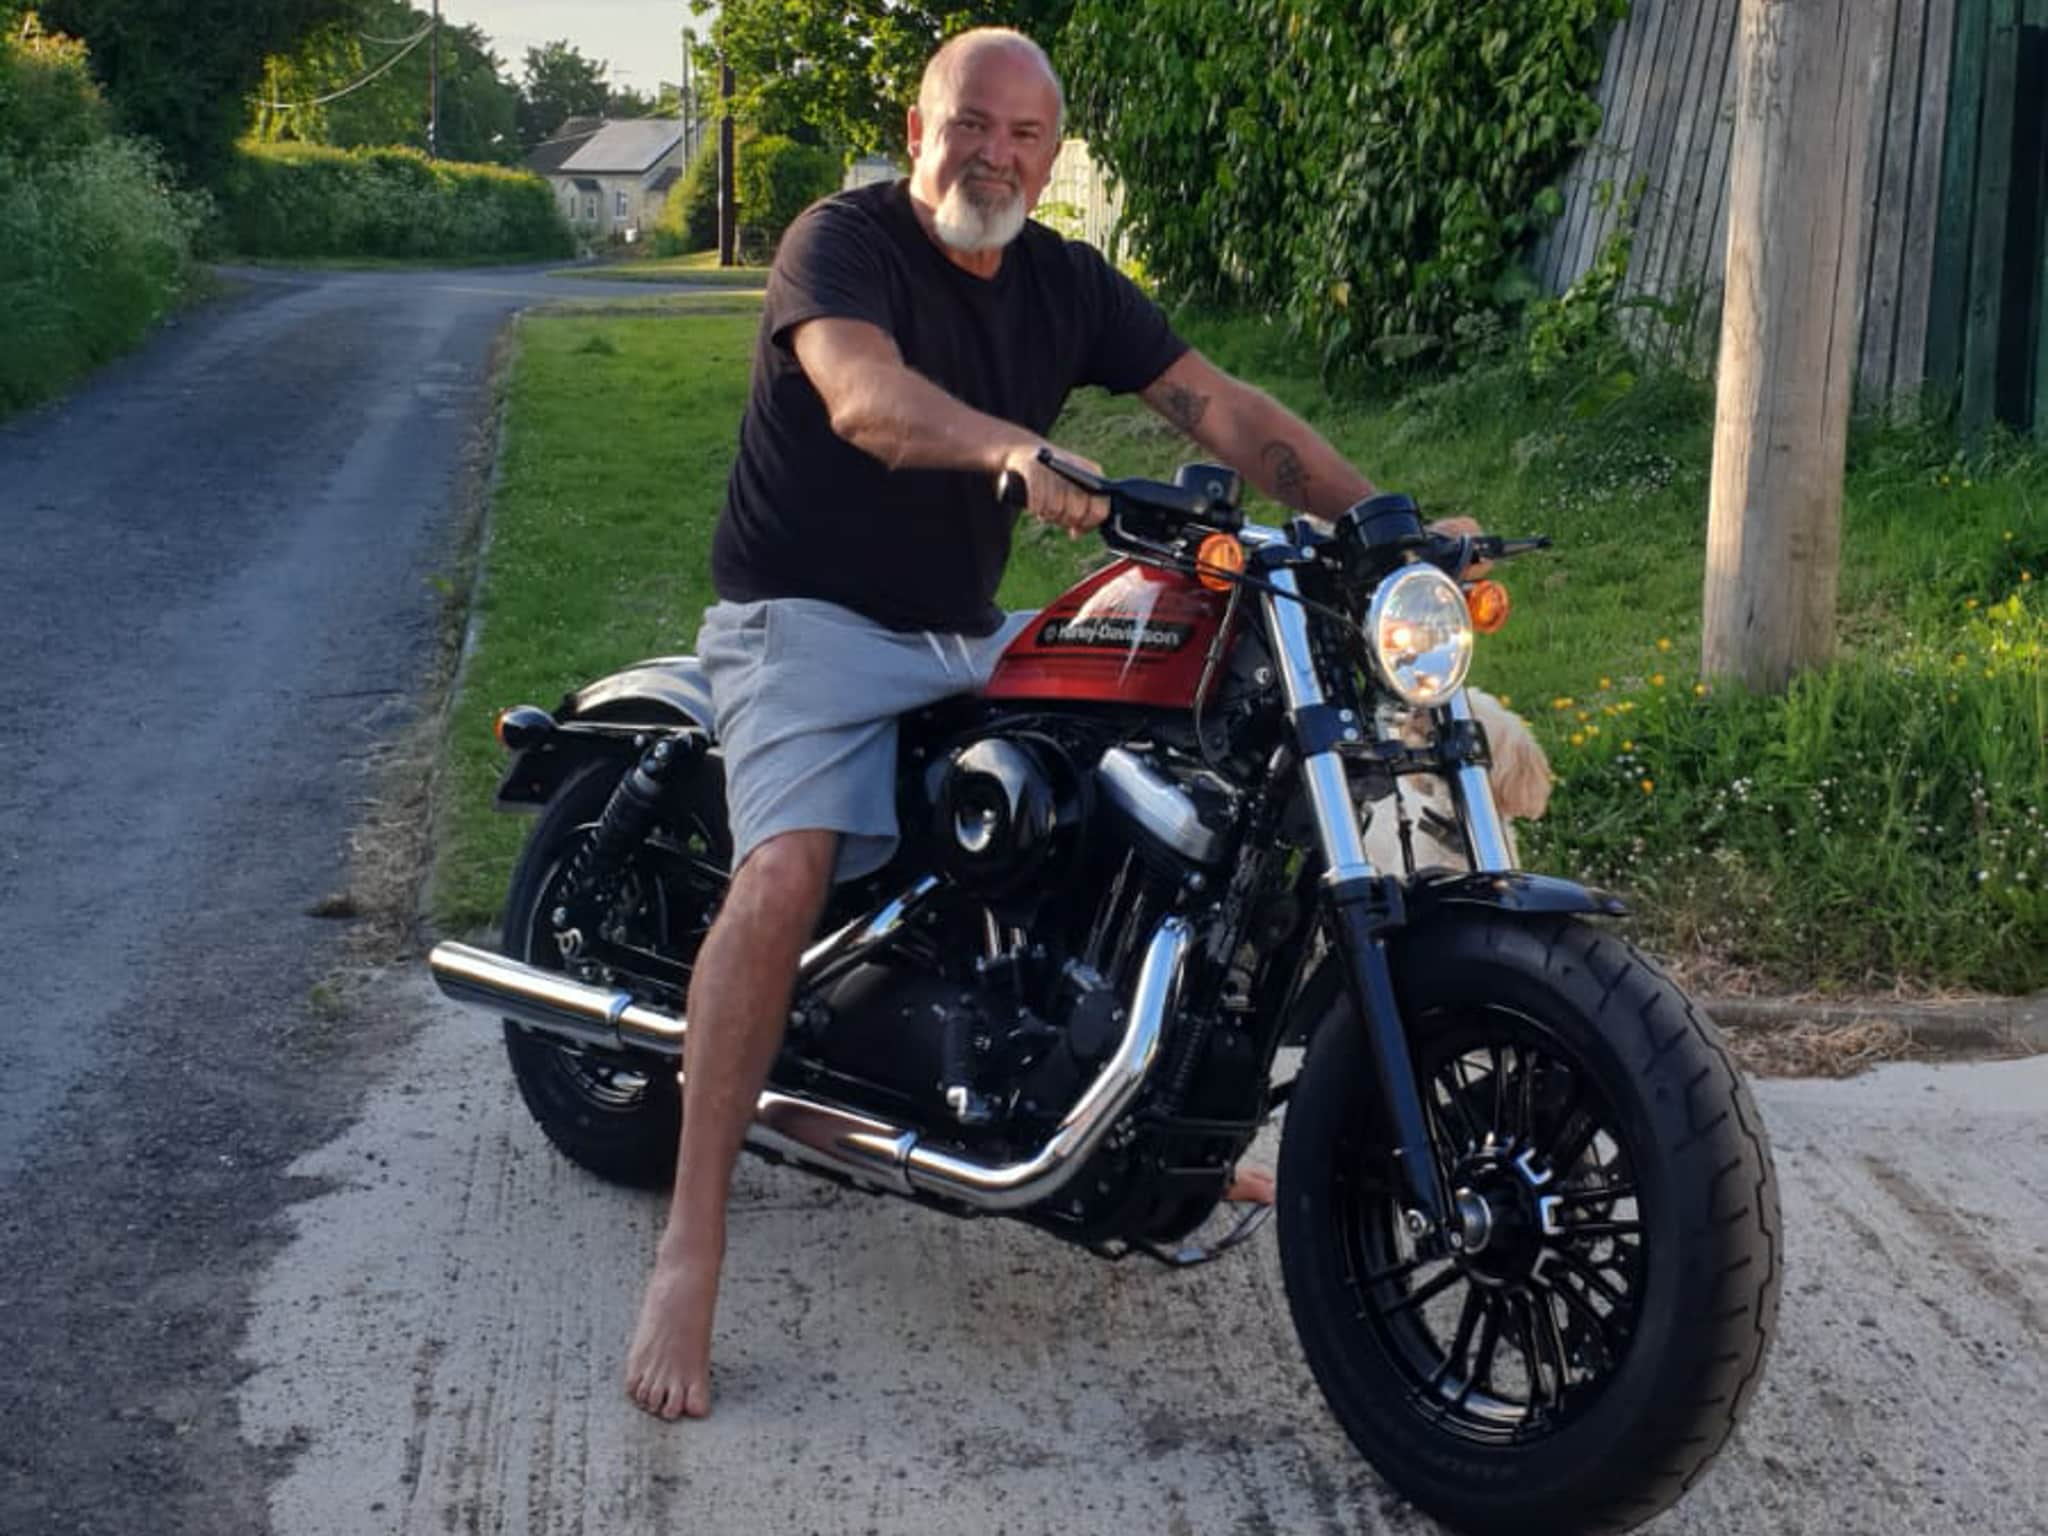 Winner Nico Human of a 2019 Harley Davidson Sportster 1200 Forty Eight! - 7th June